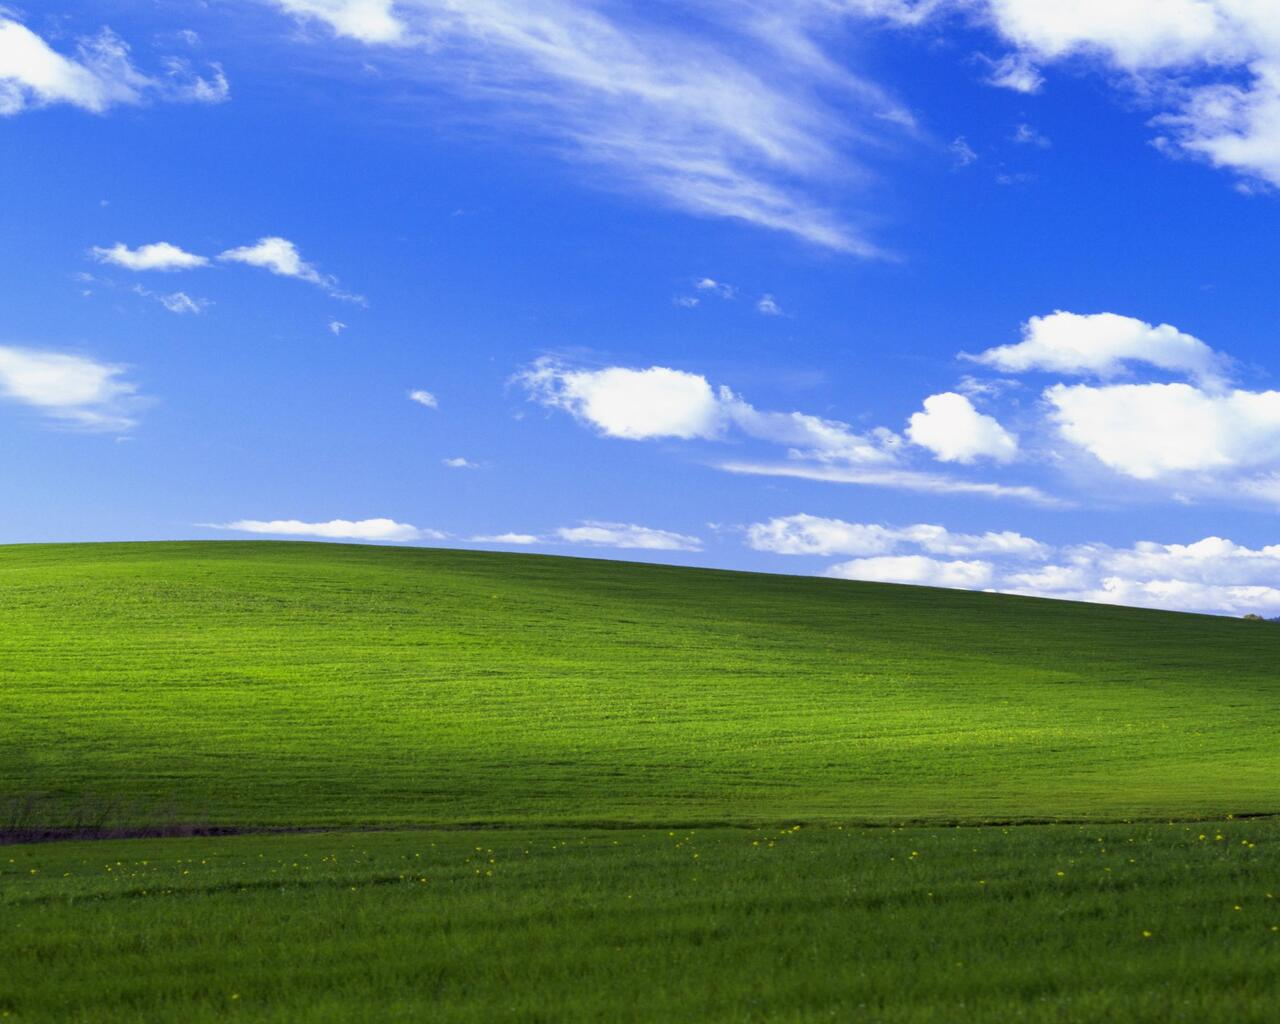 1280x1024 Windows Xp Bliss 4k 1280x1024 Resolution Hd 4k Wallpapers Images Backgrounds Photos And Pictures